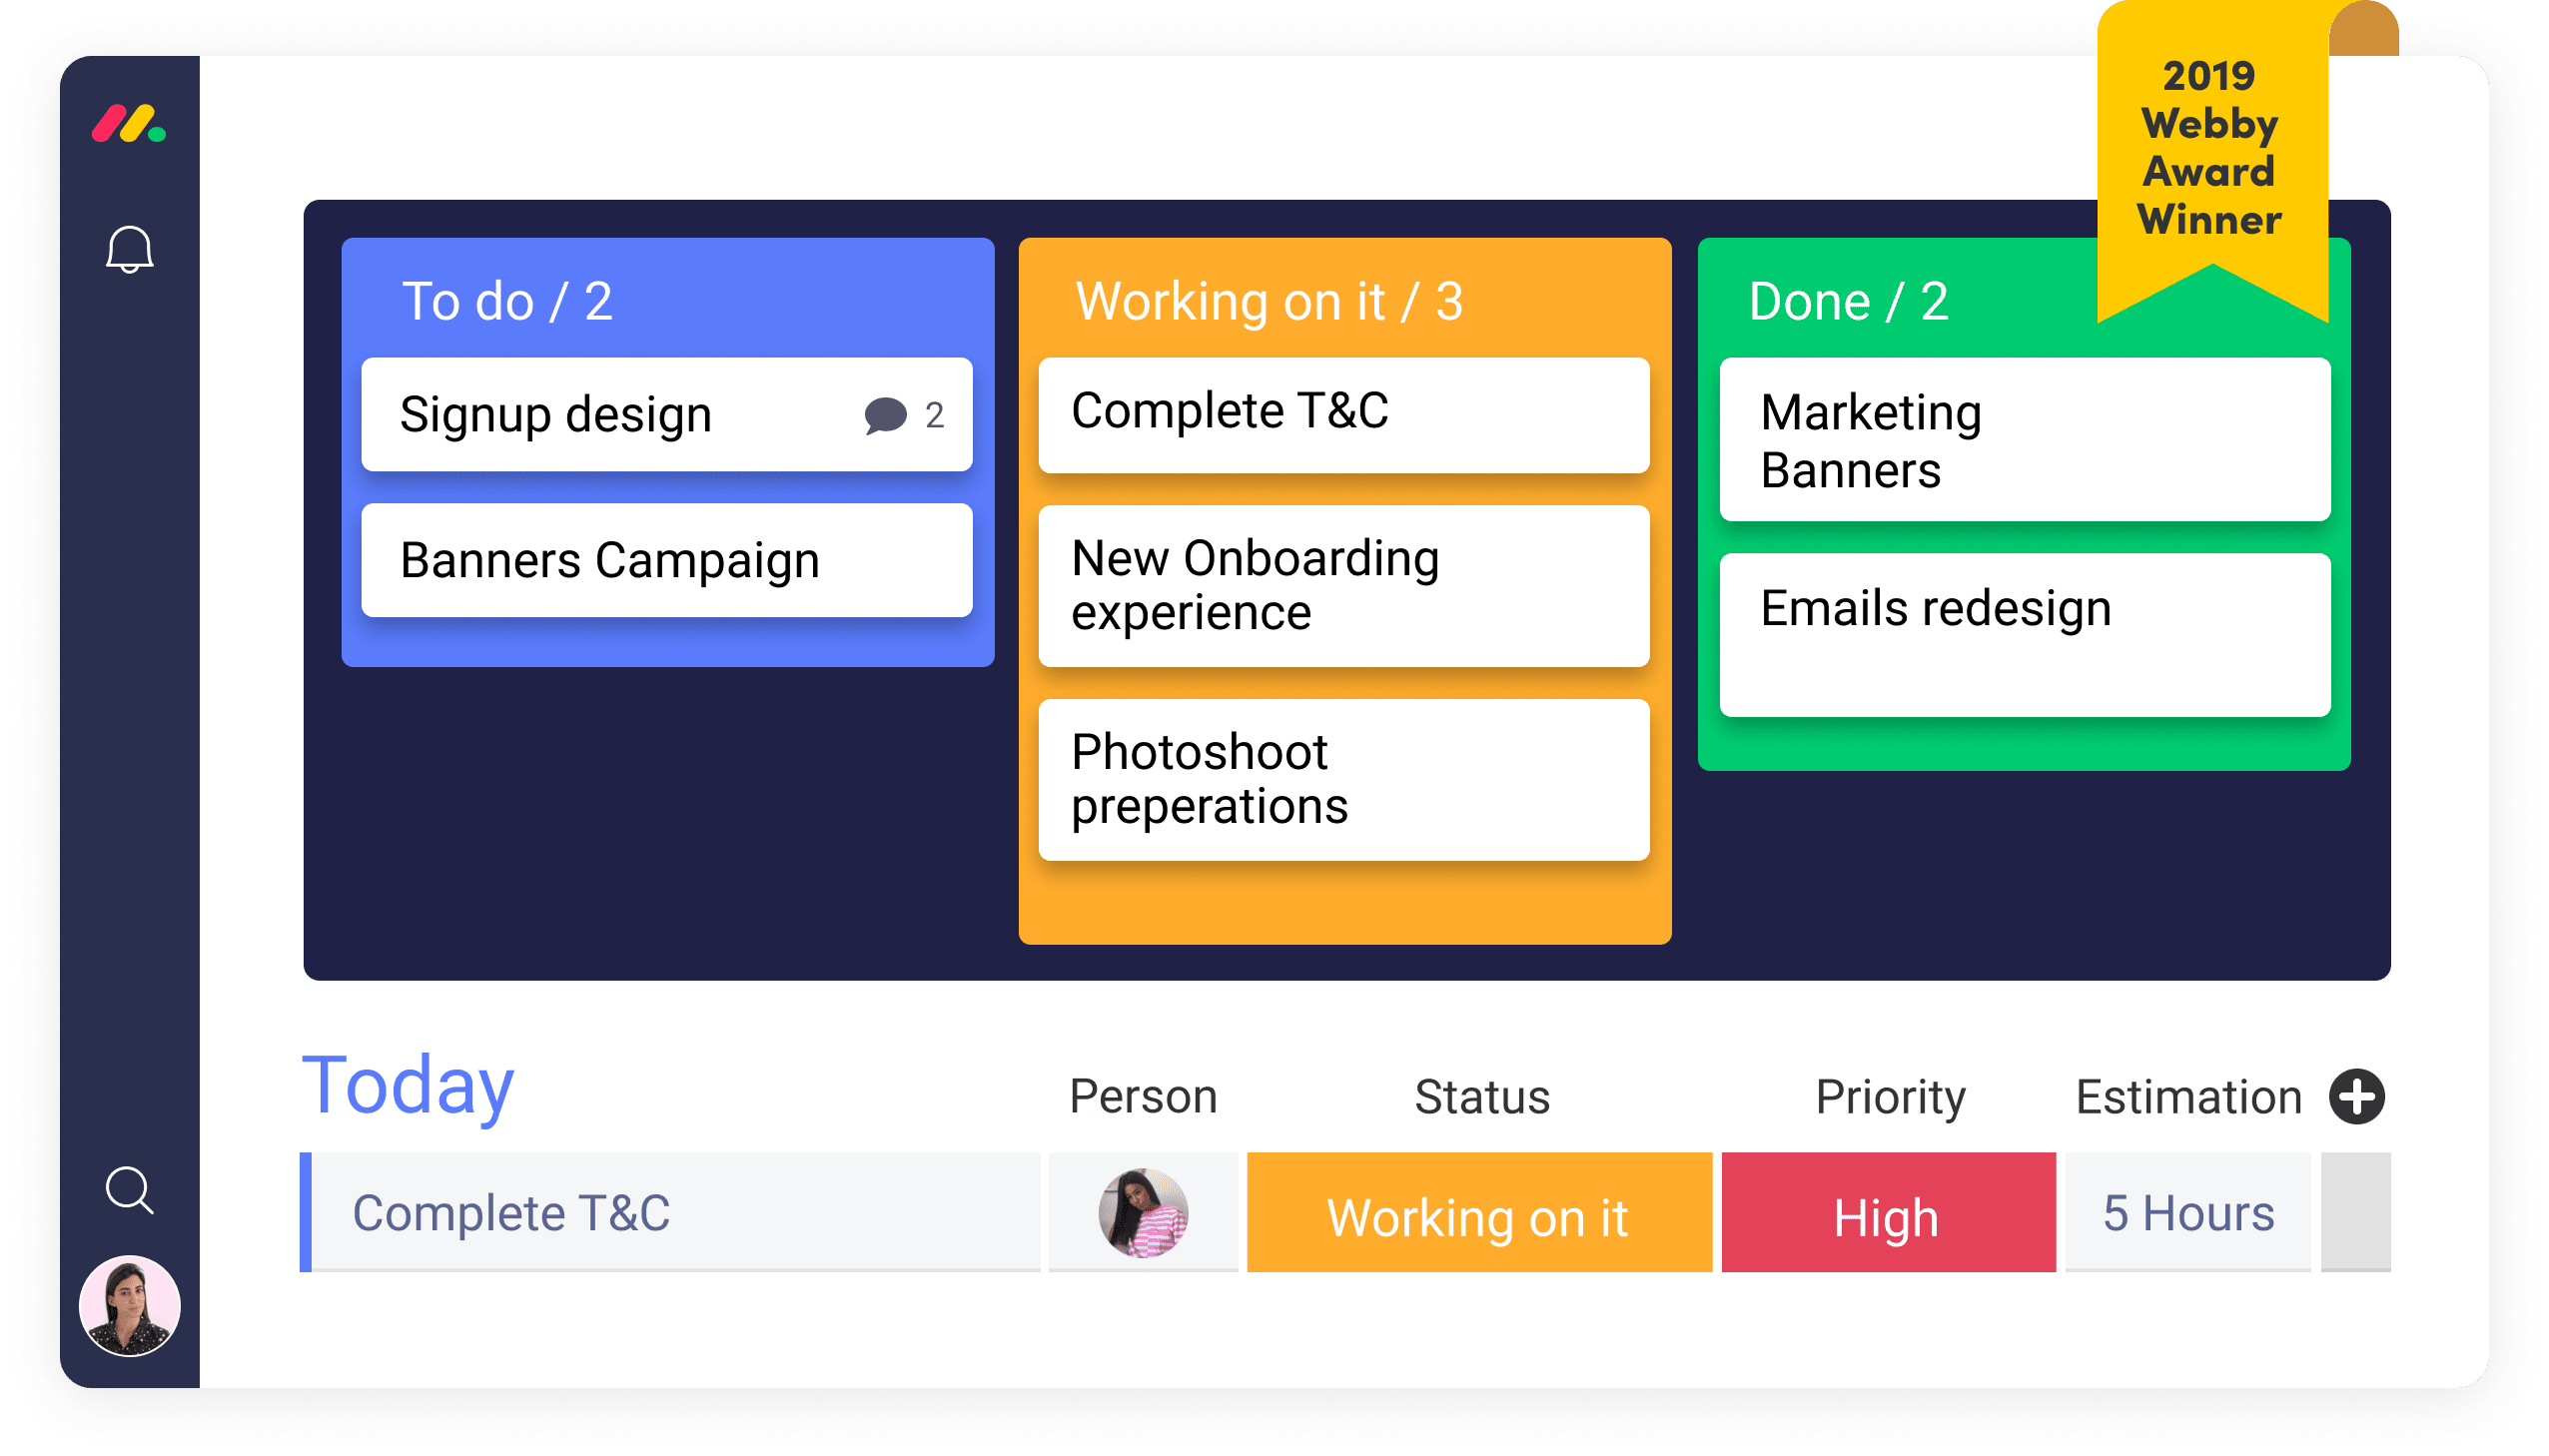 Stay organized with monday.com's lead tracking software